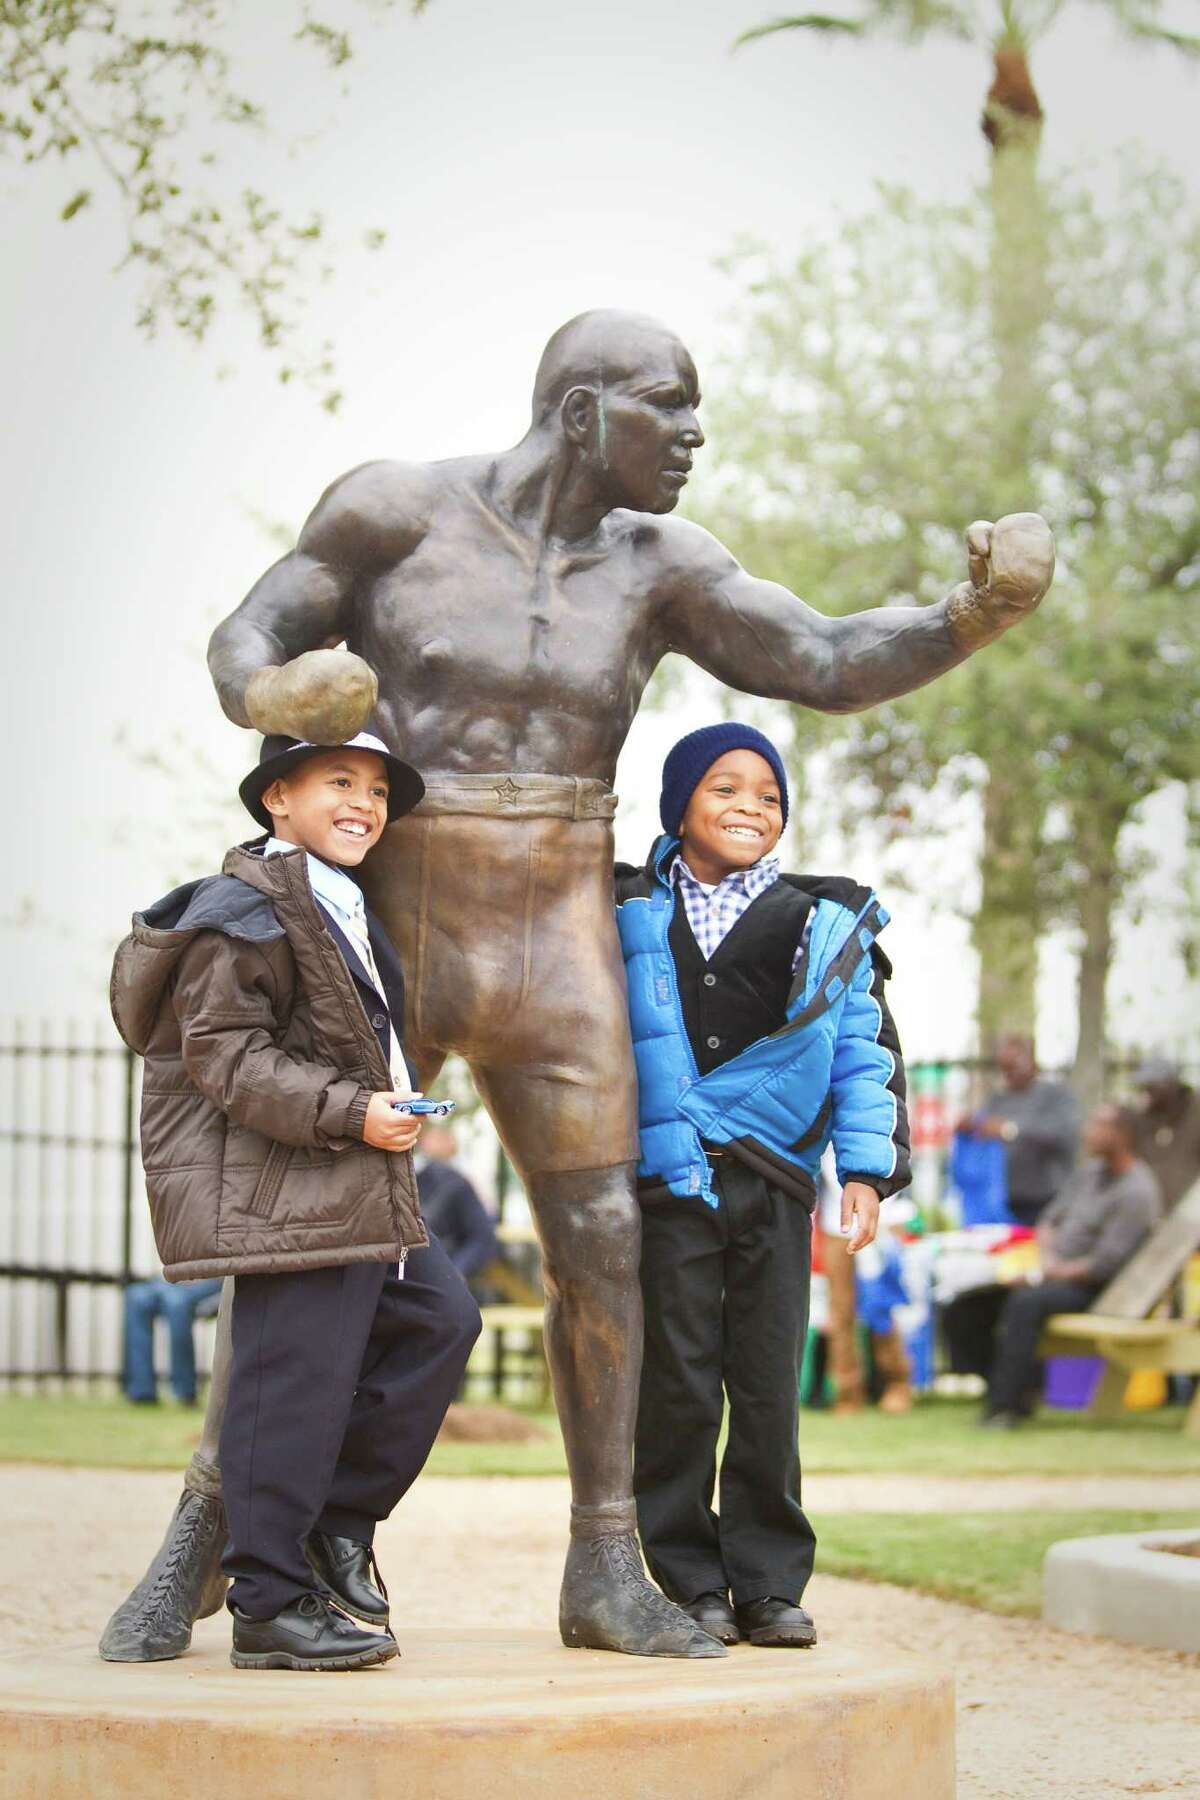 Jedadiah Baker, of Austin, left, and his cousin Daniel Speights, of Missouri City, poses for a picture with a new statue of Jack Johnson after a dedication ceremony for Jack Johnson Park at the Old Central High School, Tuesday, in Galveston. Johnson was the first African American heavyweight champion.